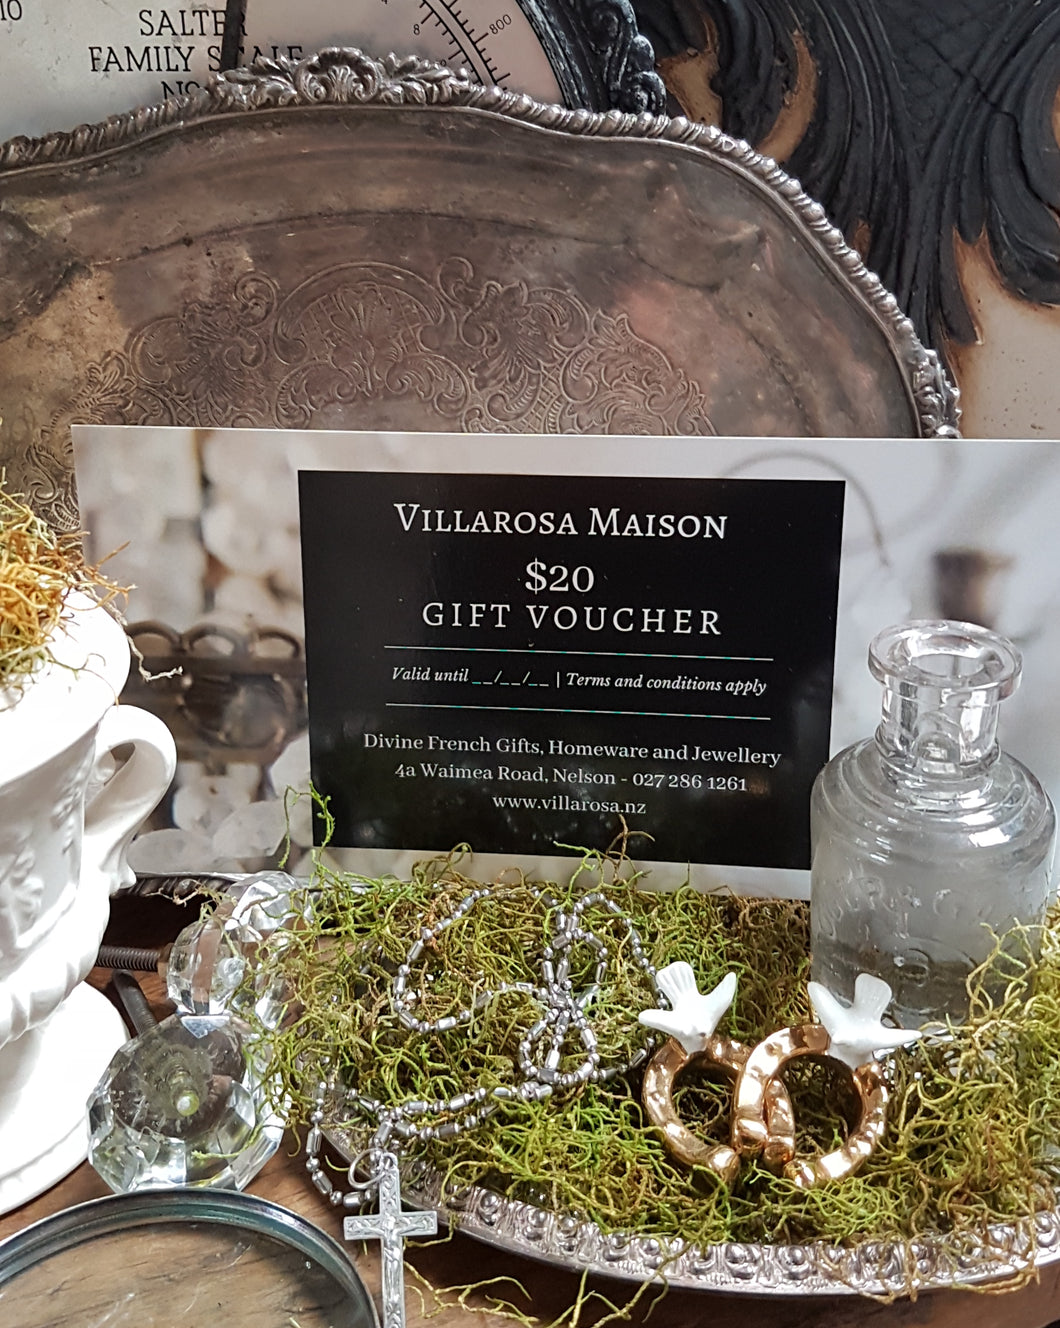 Villarosa Maison Gift Voucher - $20 Value